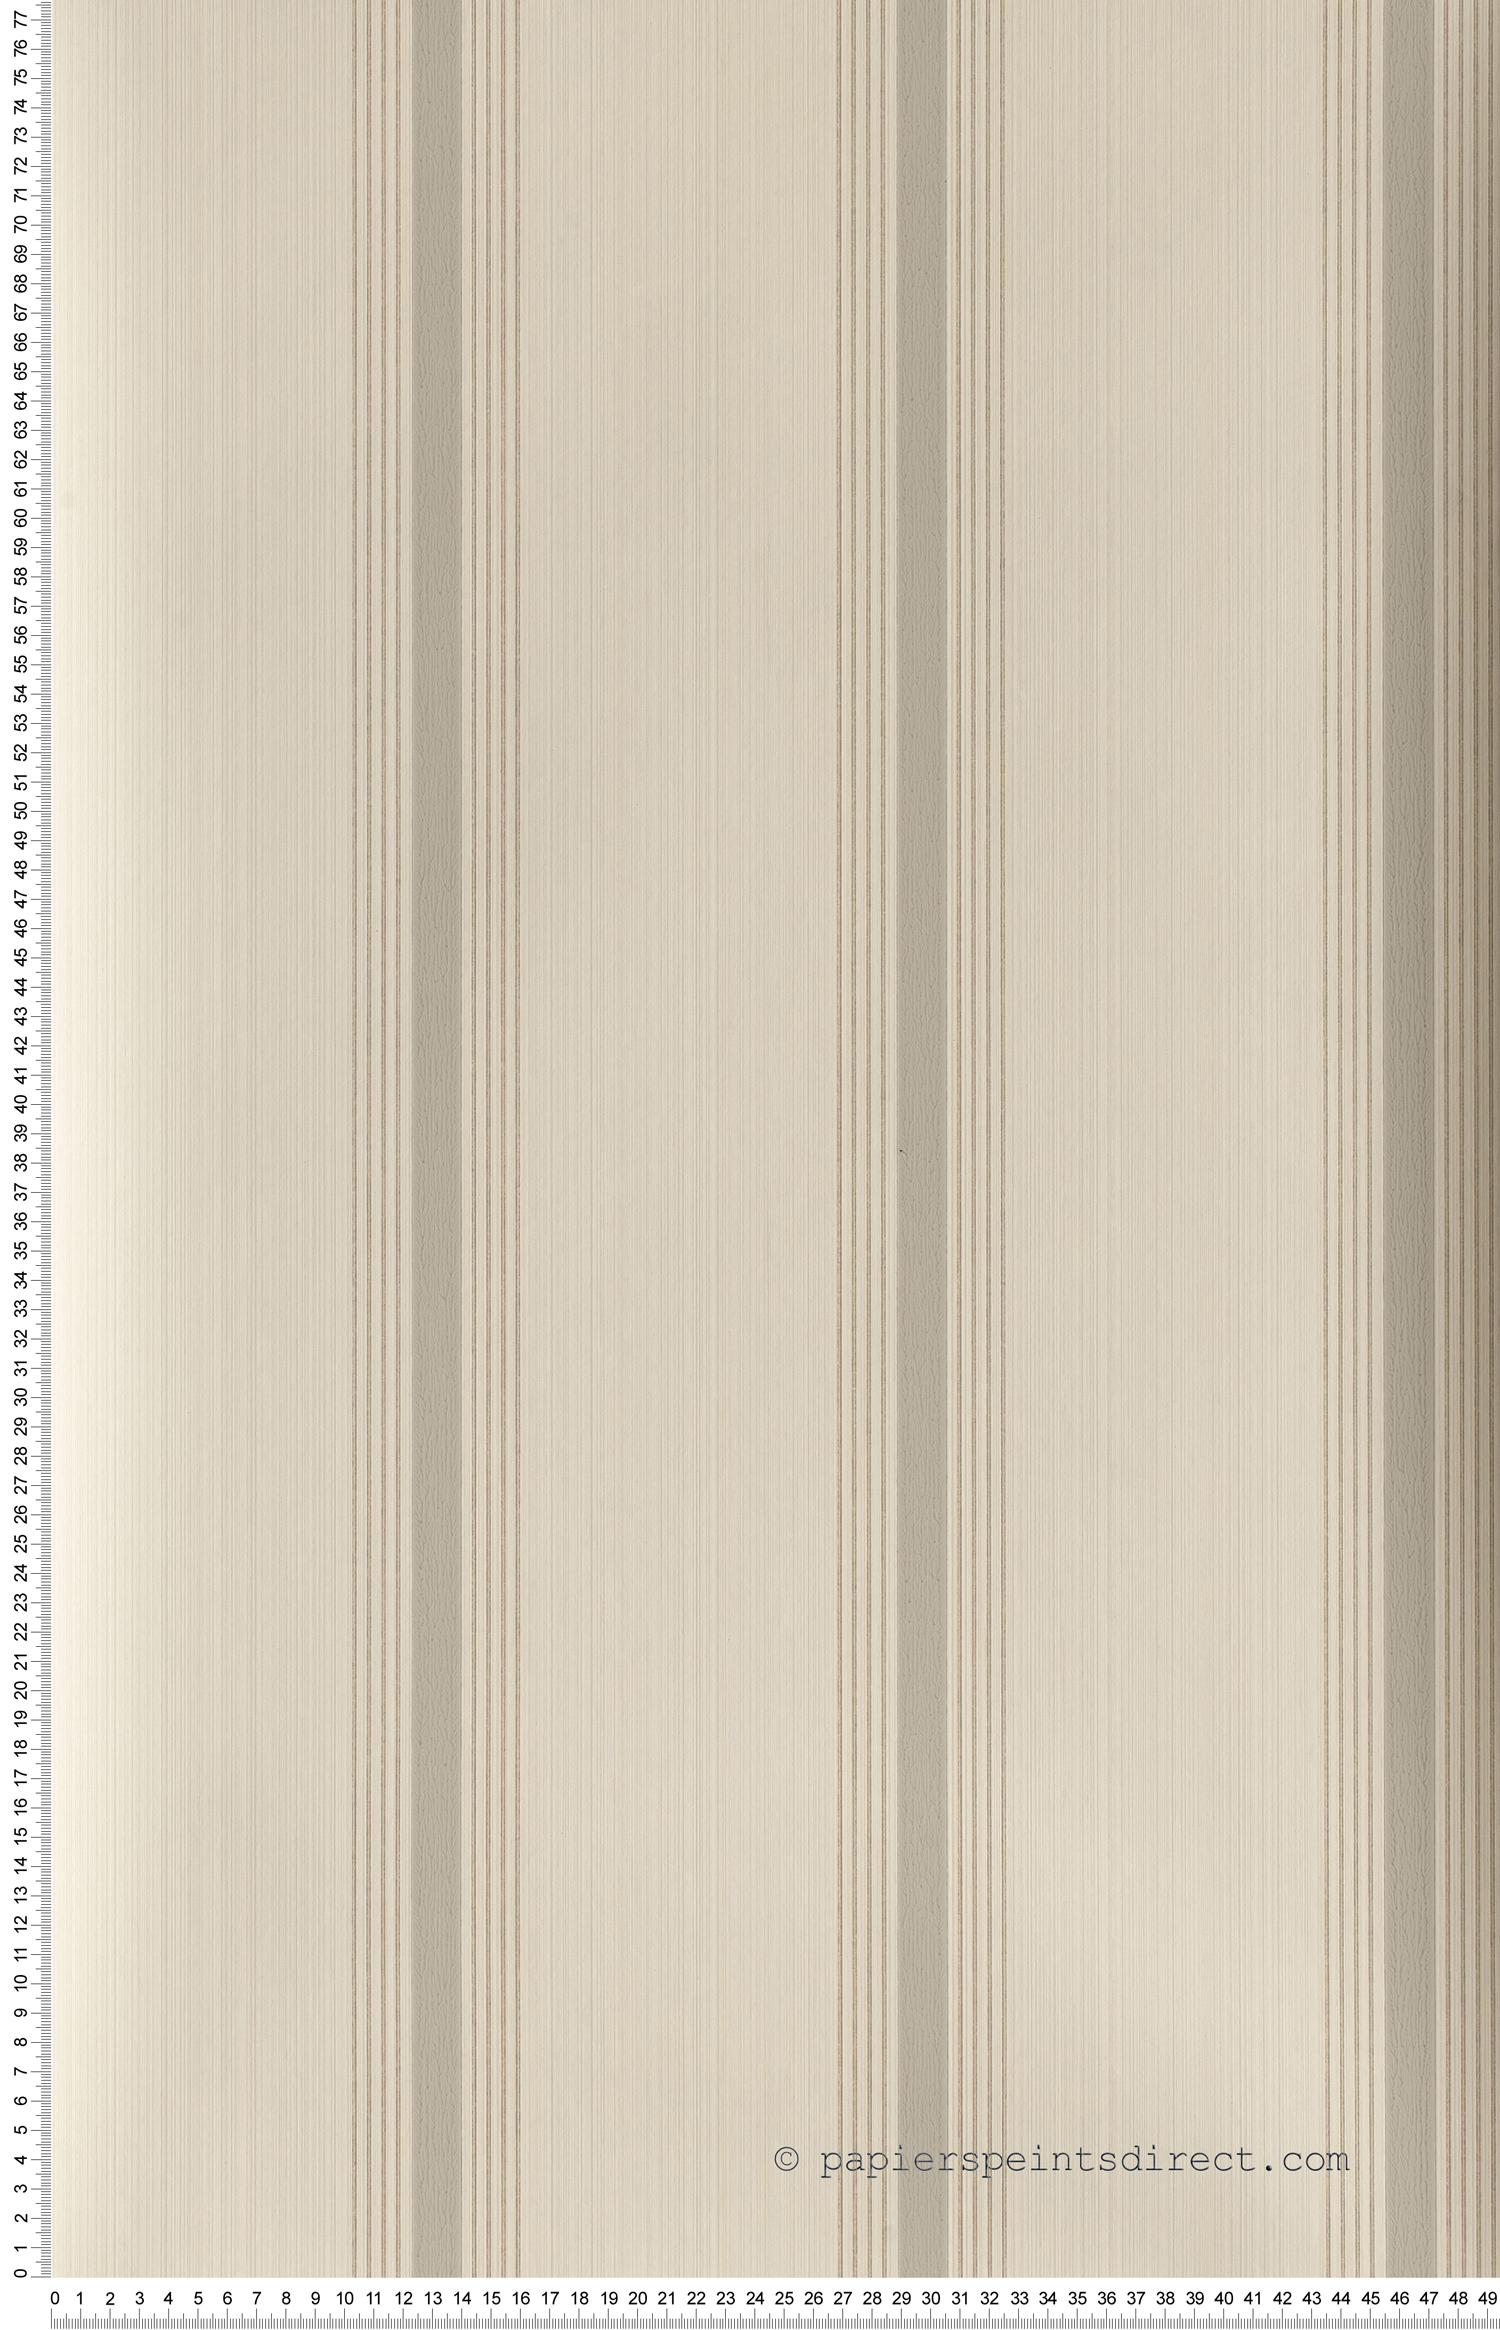 Cavendish stripes Brush stone - Painted Papers de Little Greene